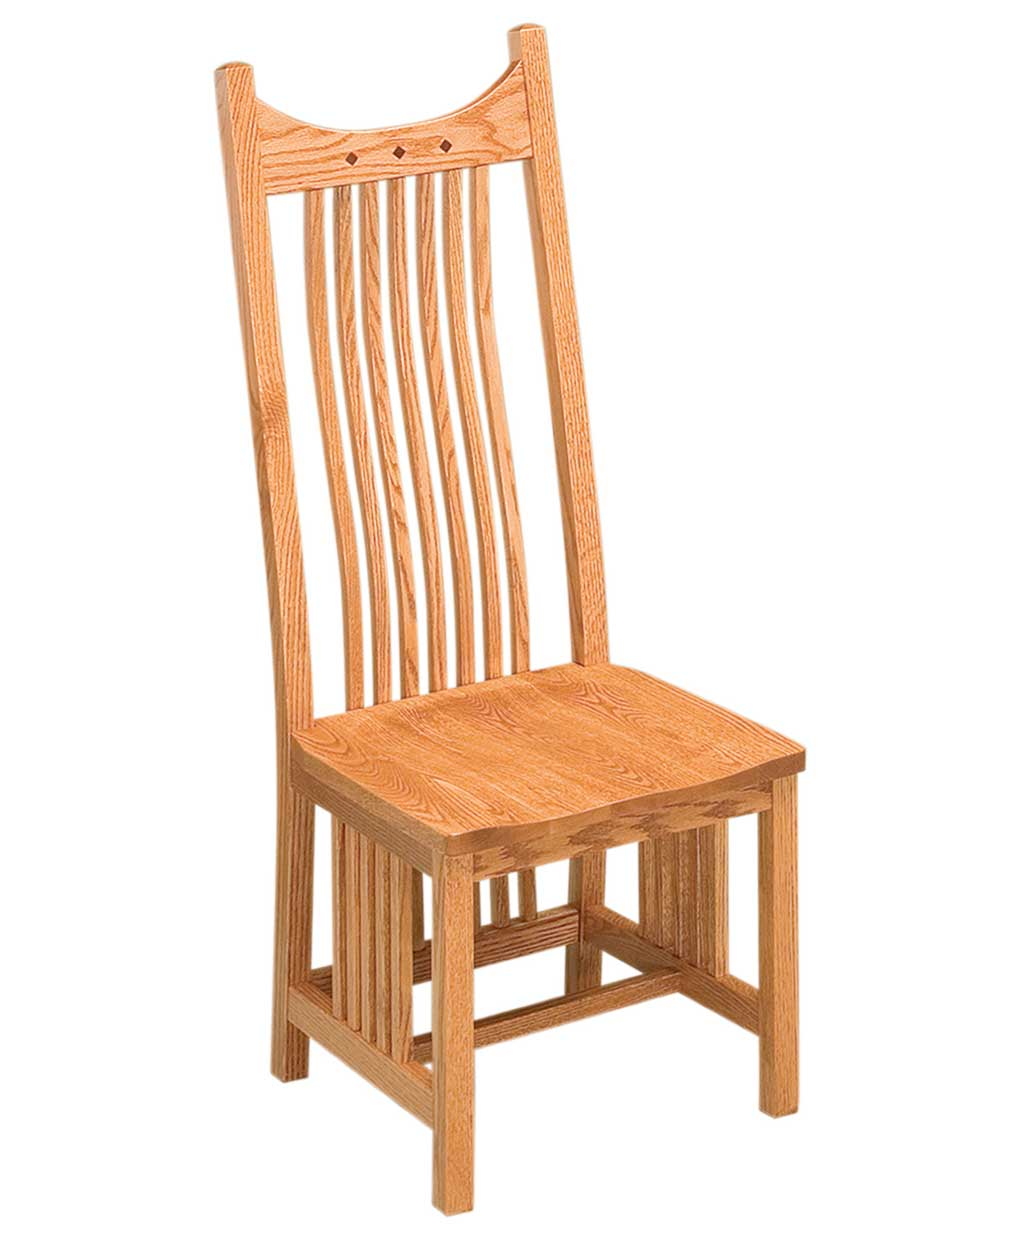 Poly Lumber Outdoor Furniture Royal Mission Dining Chair - Amish Direct Furniture